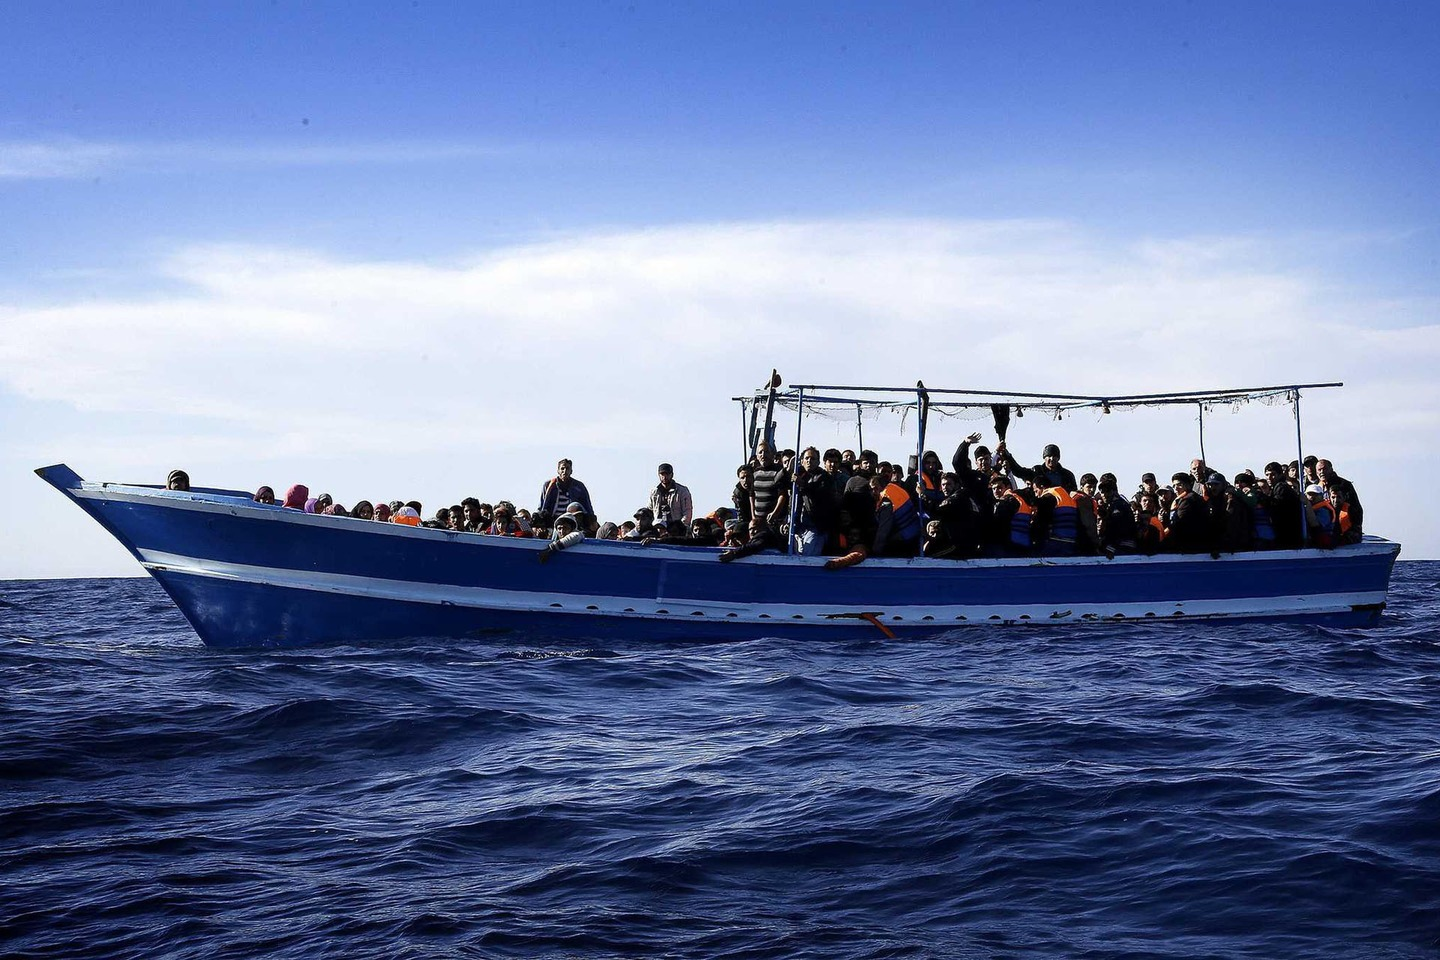 People on a boat carrying 267 migrants, including men, women and children, off the coast of Libya in the southern Mediterranean Sea. PHOTO:AFP